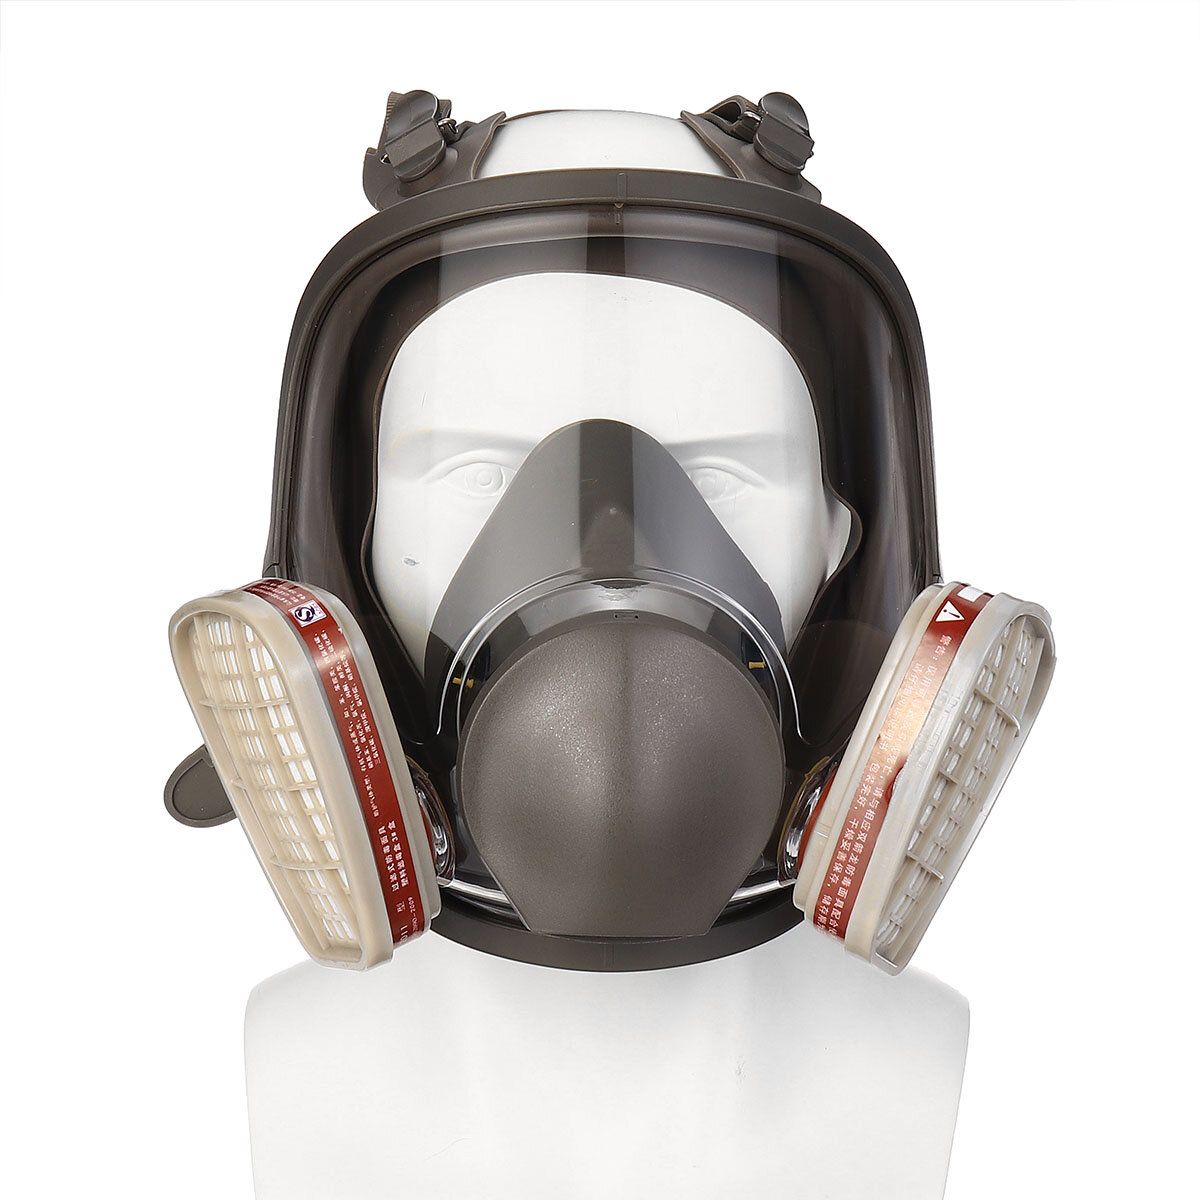 3m full face respirator mask 6800